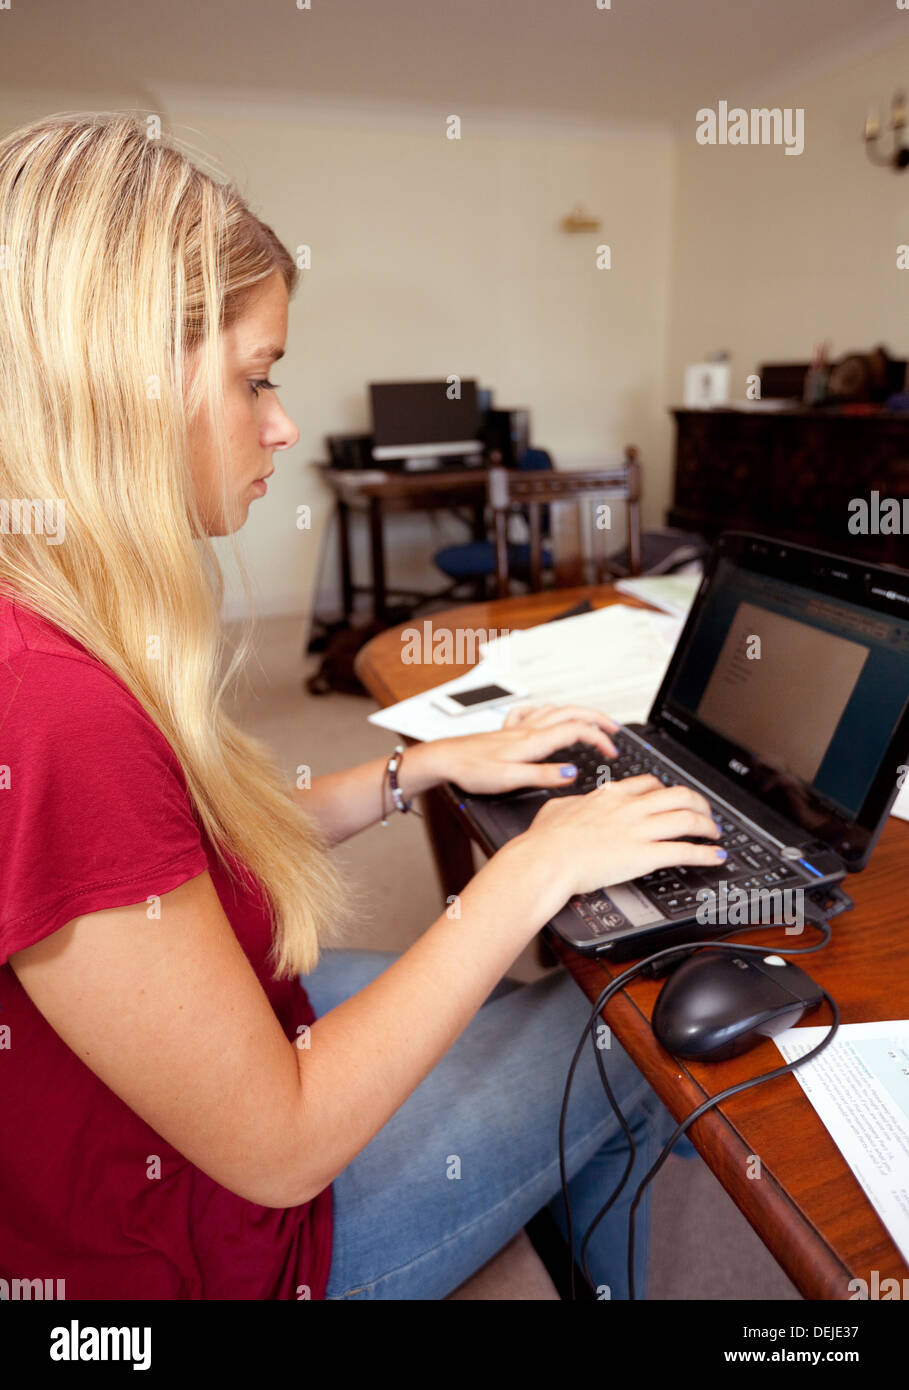 Young woman sitting at a table working on a laptop computer doing paperwork at home, UK - Stock Image